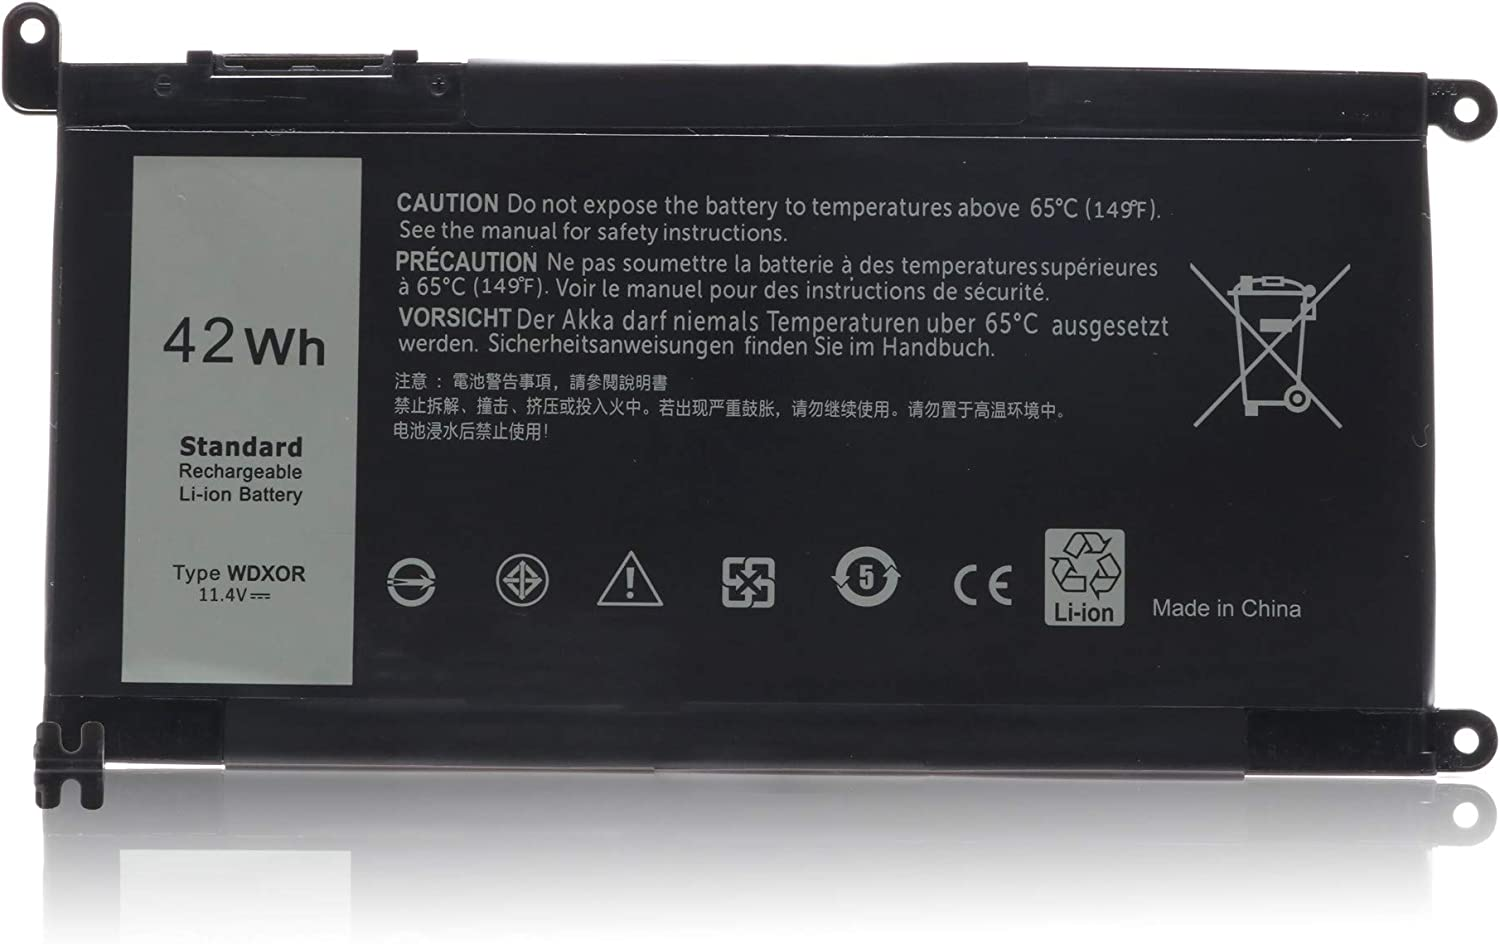 New WDX0R for New Battery Replacement for Dell Inspiron 13 5368 5378 15 5565 5567 5568 5578 17 5765 5767 7368 7378 7560 7570 7579 7569 P58F 3CRH3 T2JX4 FC92N CYMGM